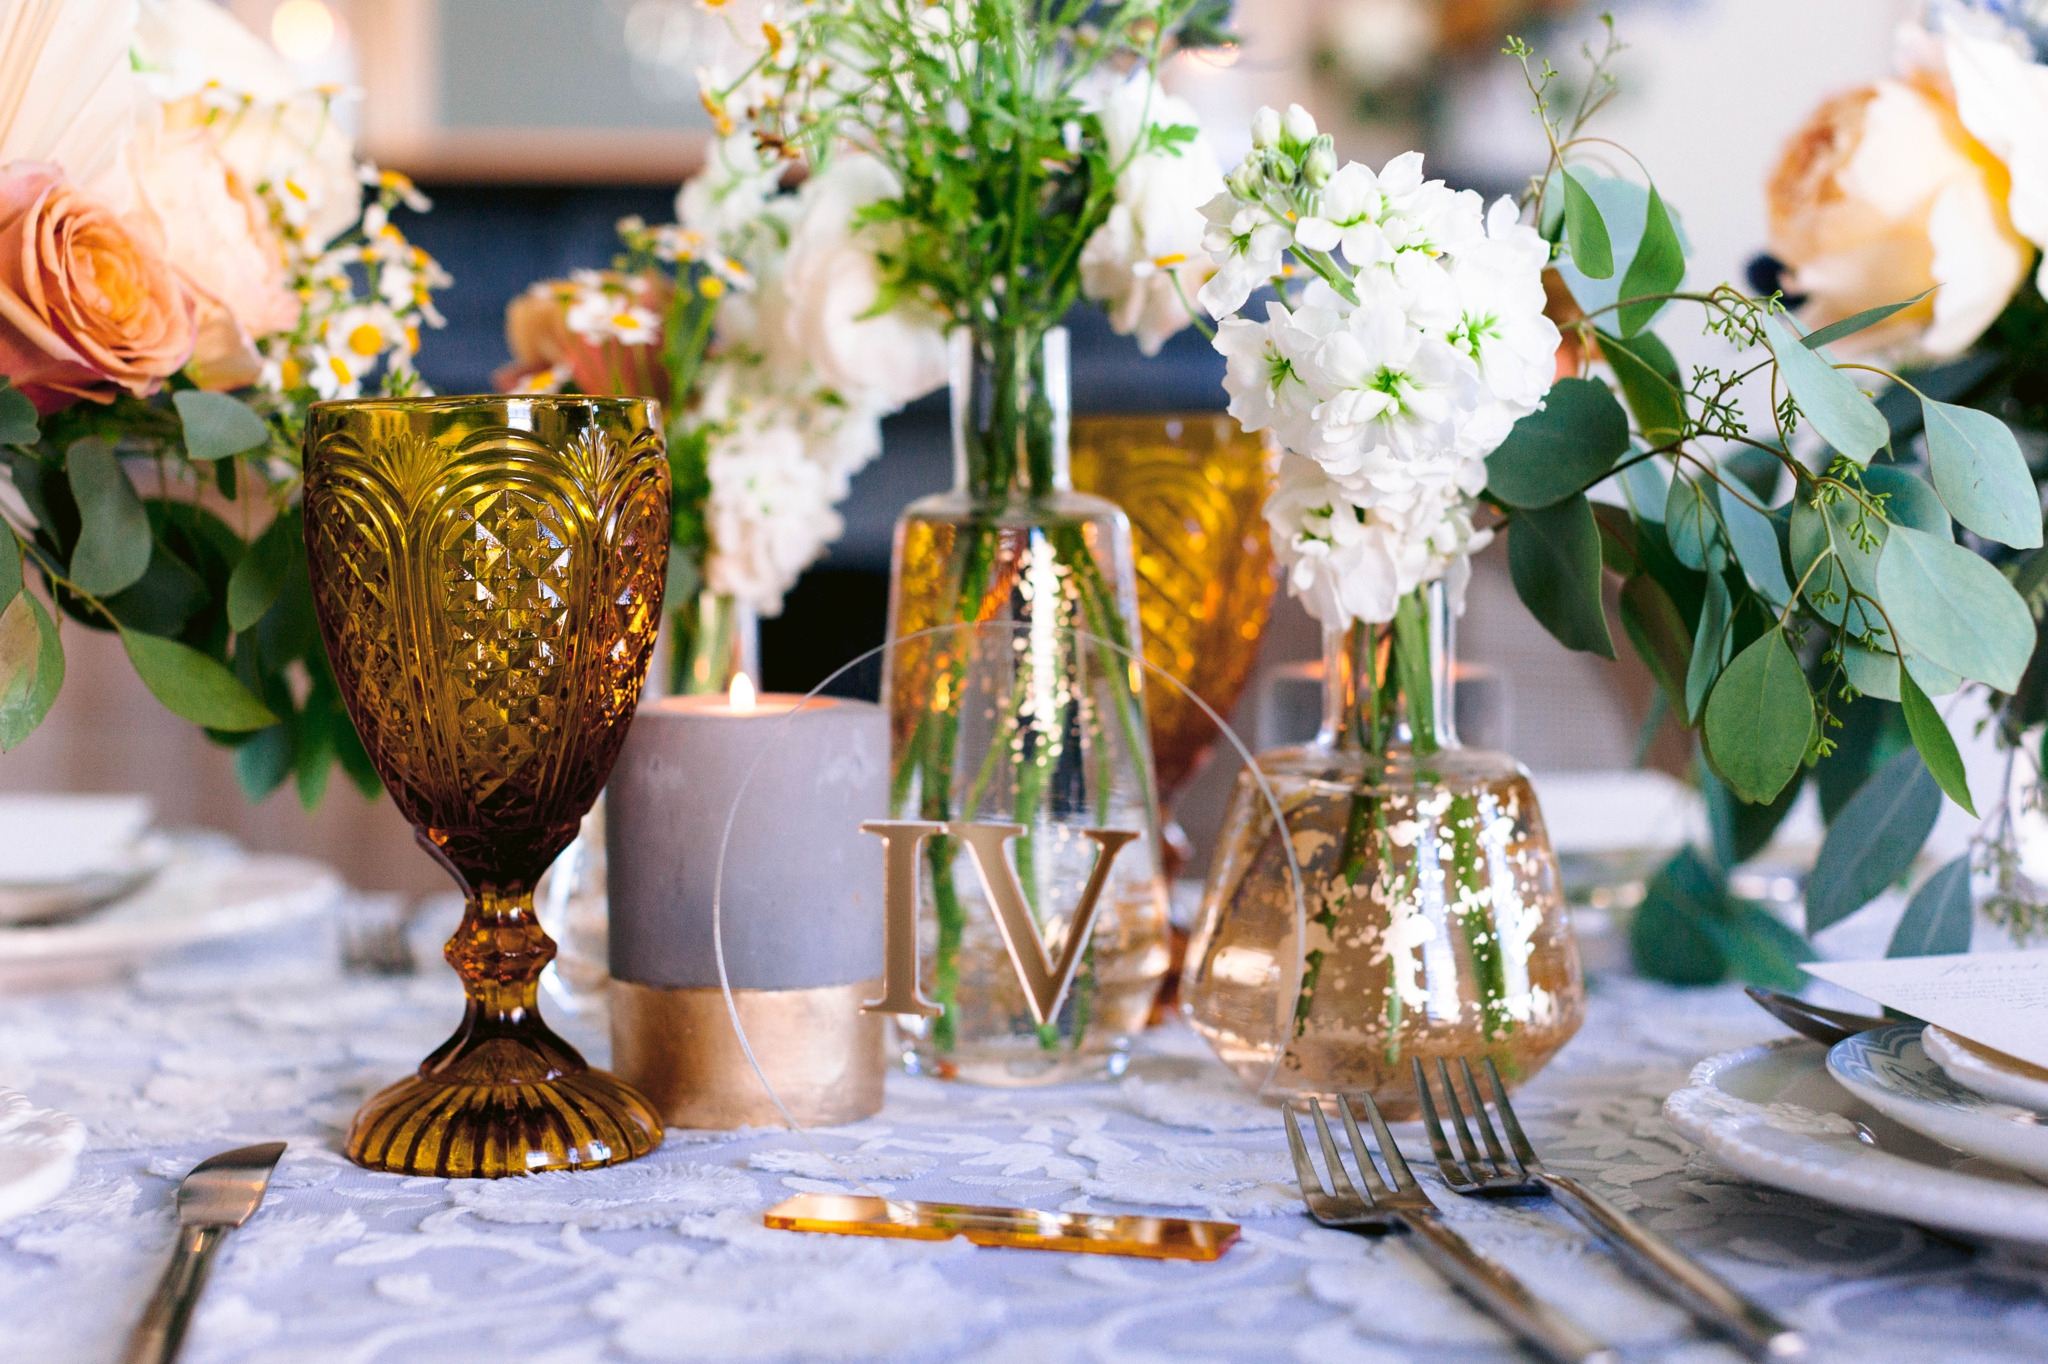 Gold Table Number  - Wedding Table Set up with white and blue tablecloth, white and pastel china and pastel flowers - martha stewart weddings - style me pretty - Dusty Blue Wedding Inspiration - fine art photography - Honolulu, Oahu, Hawaii Wedding Photographer - johanna dye